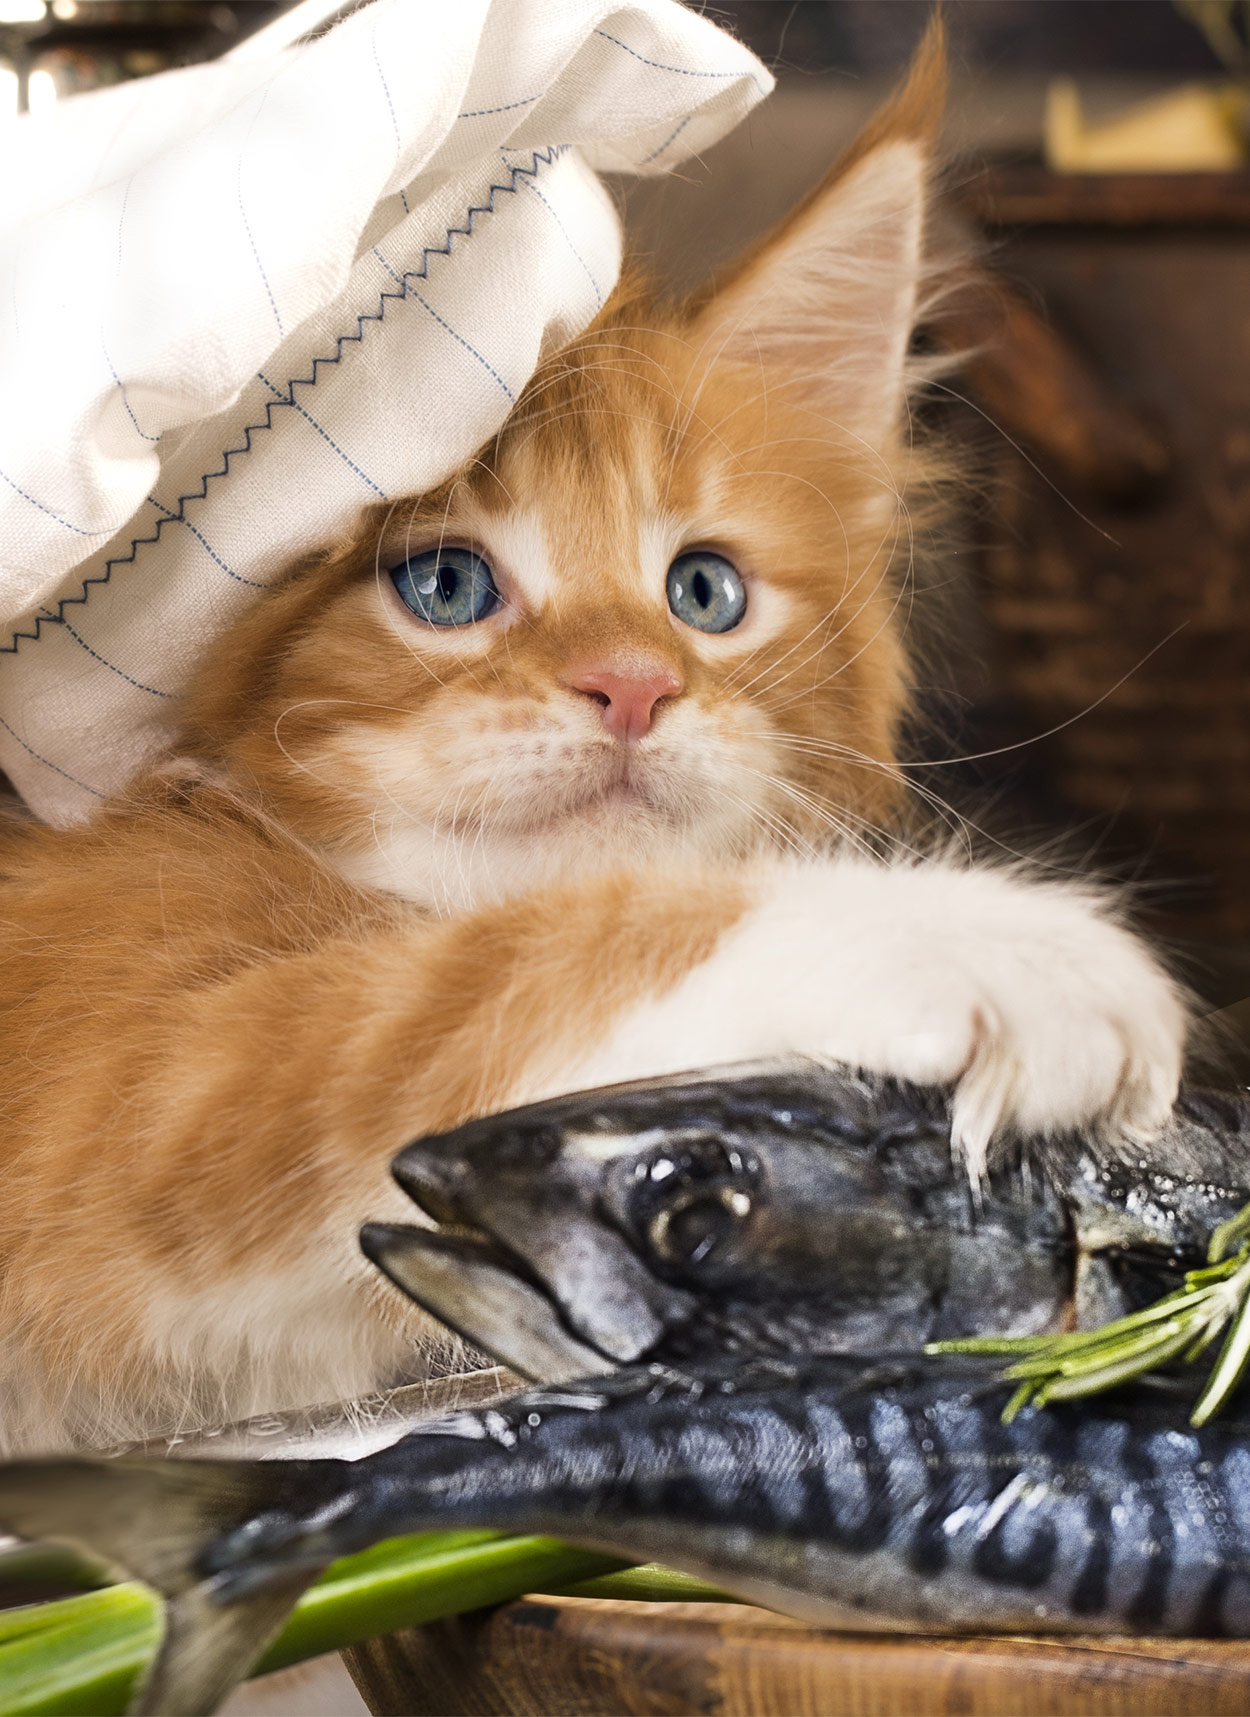 Fish Oil For Cats The Benefits And How To Serve It